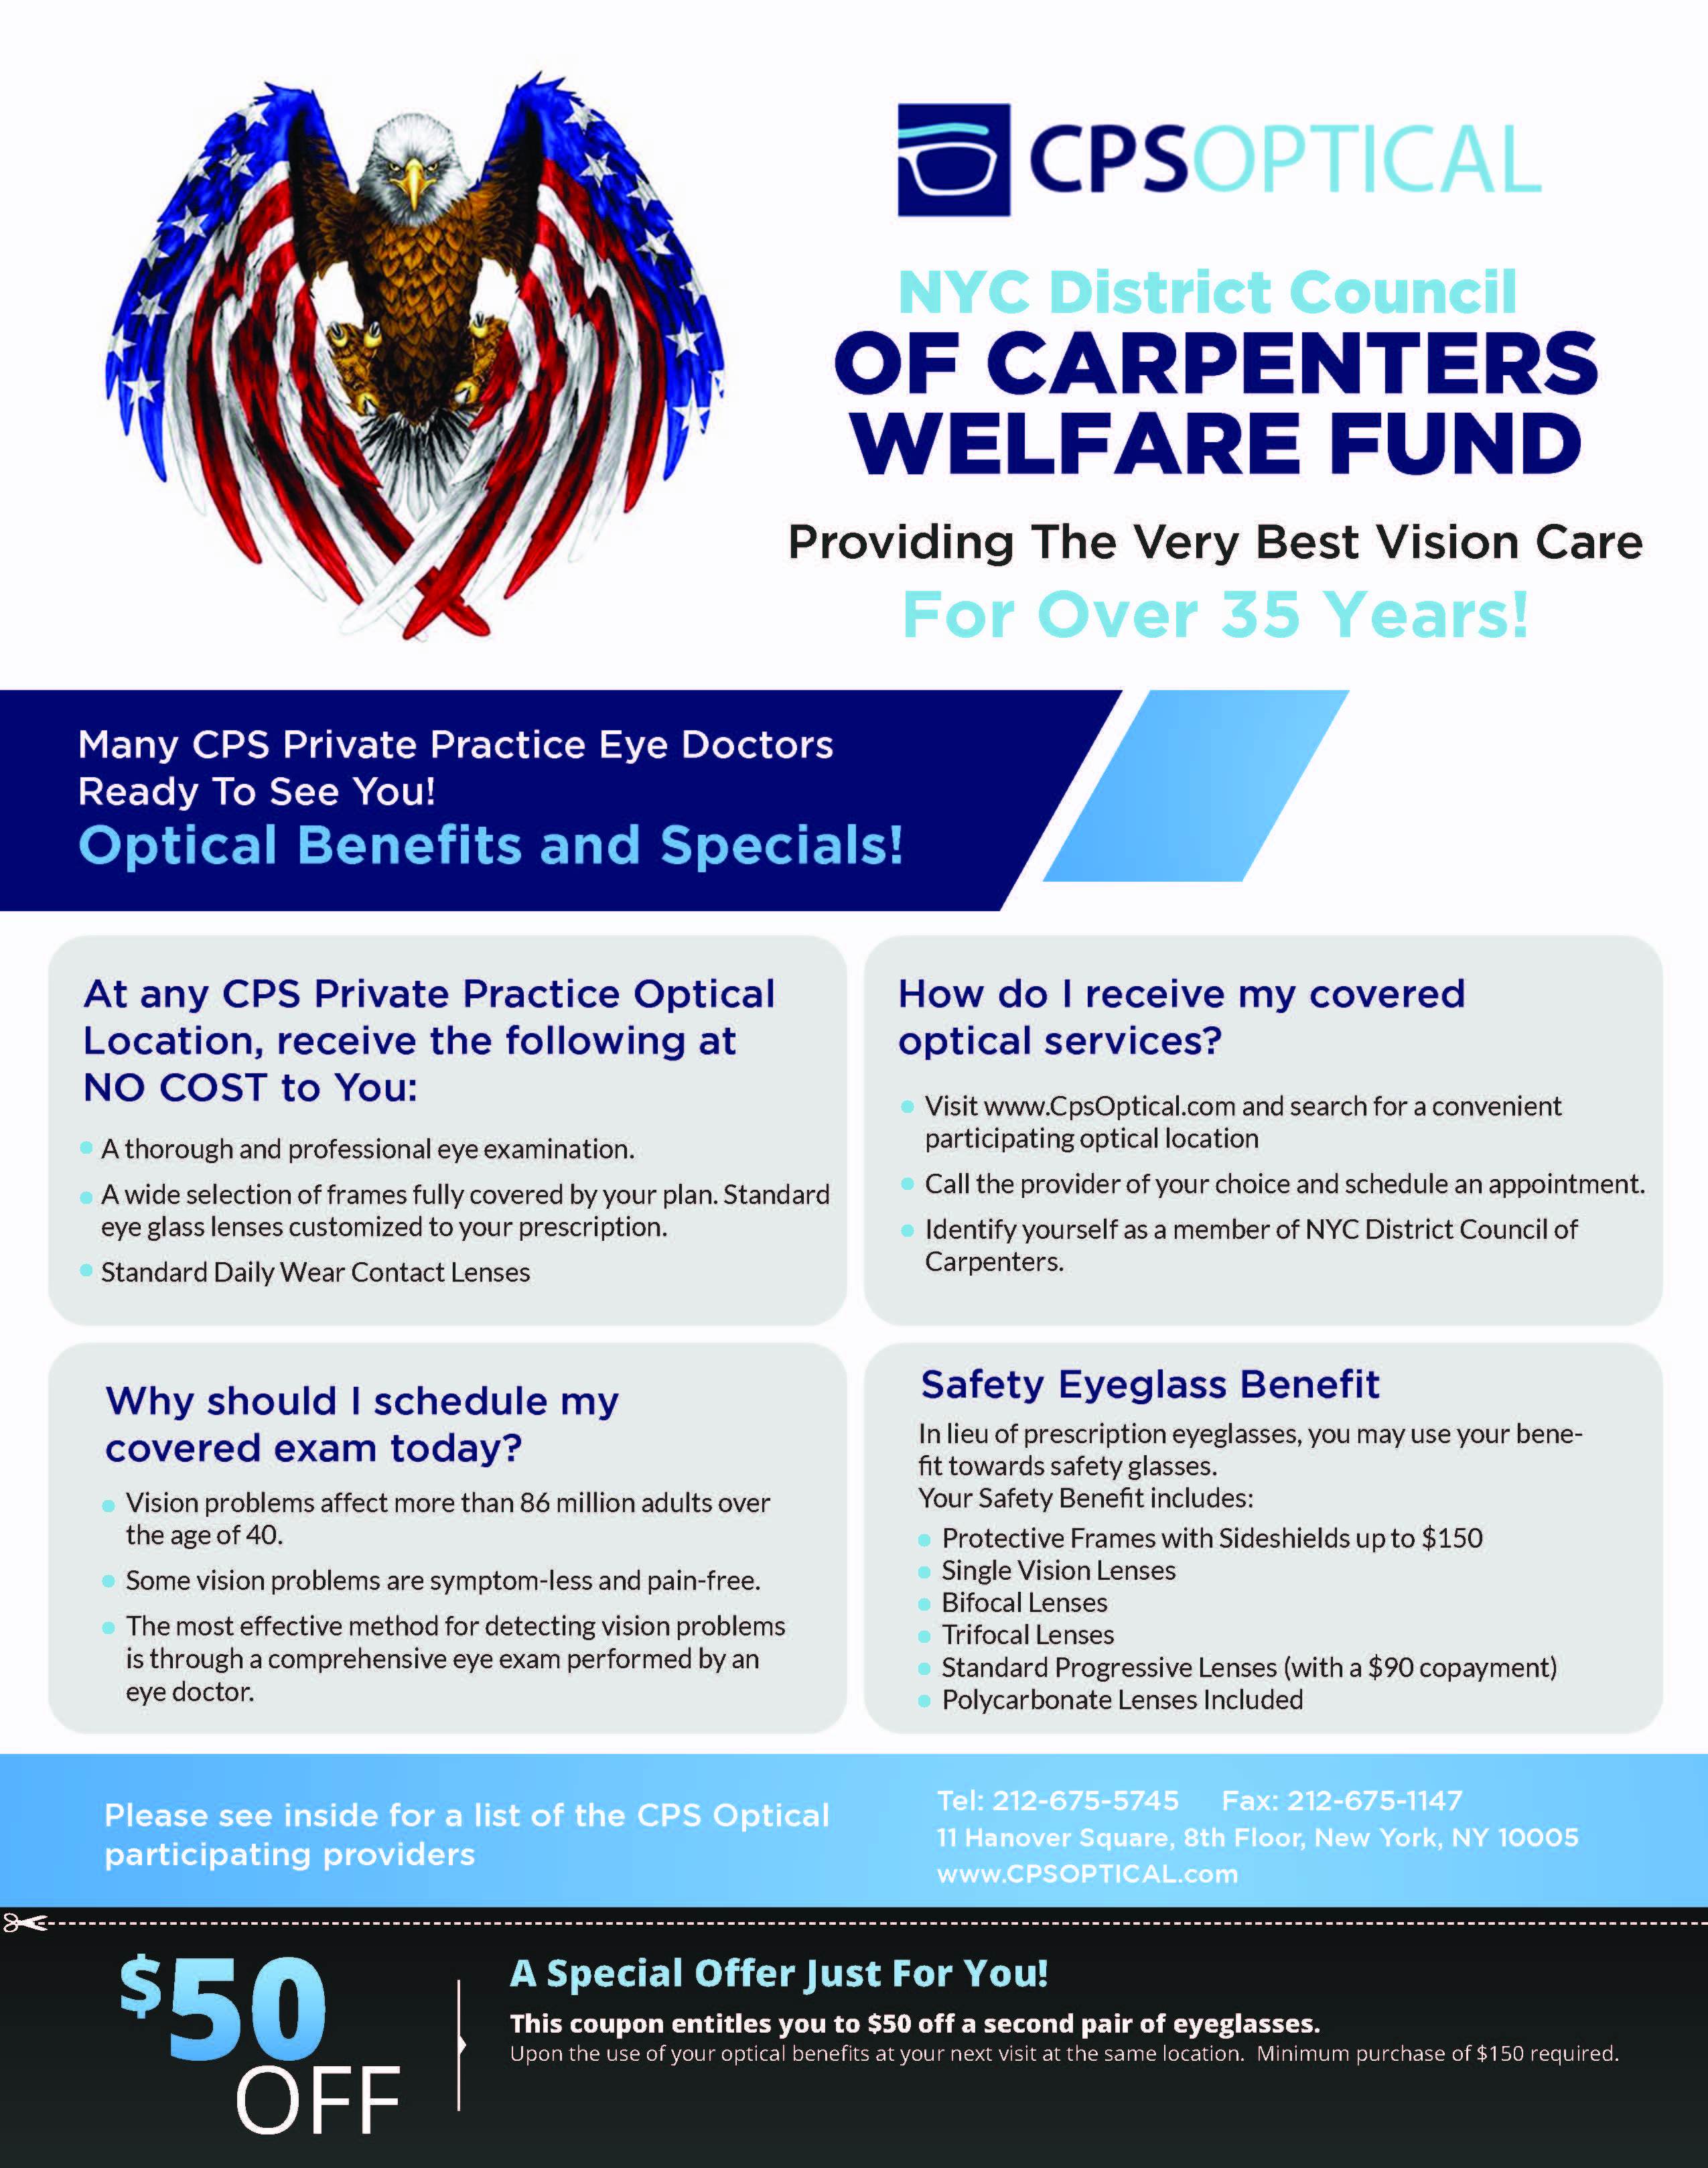 Check Out the Latest Vision Benefit Materials from CPS